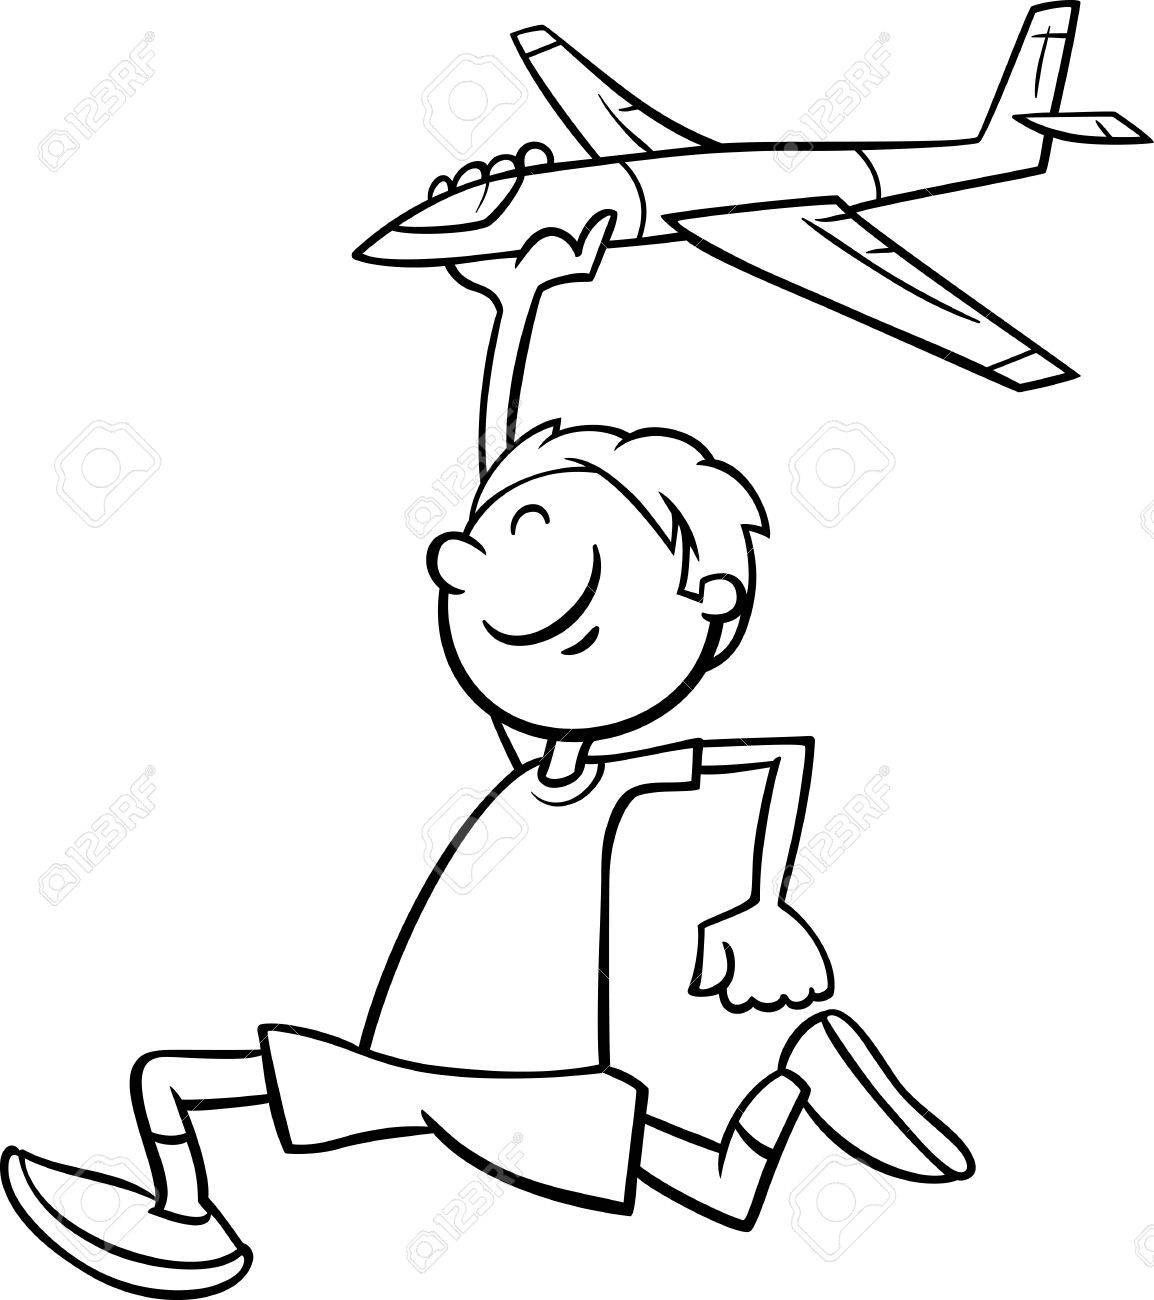 Black And White Cartoon Illustration Of Happy Little Boy With Toy Plane For Coloring Book Stock